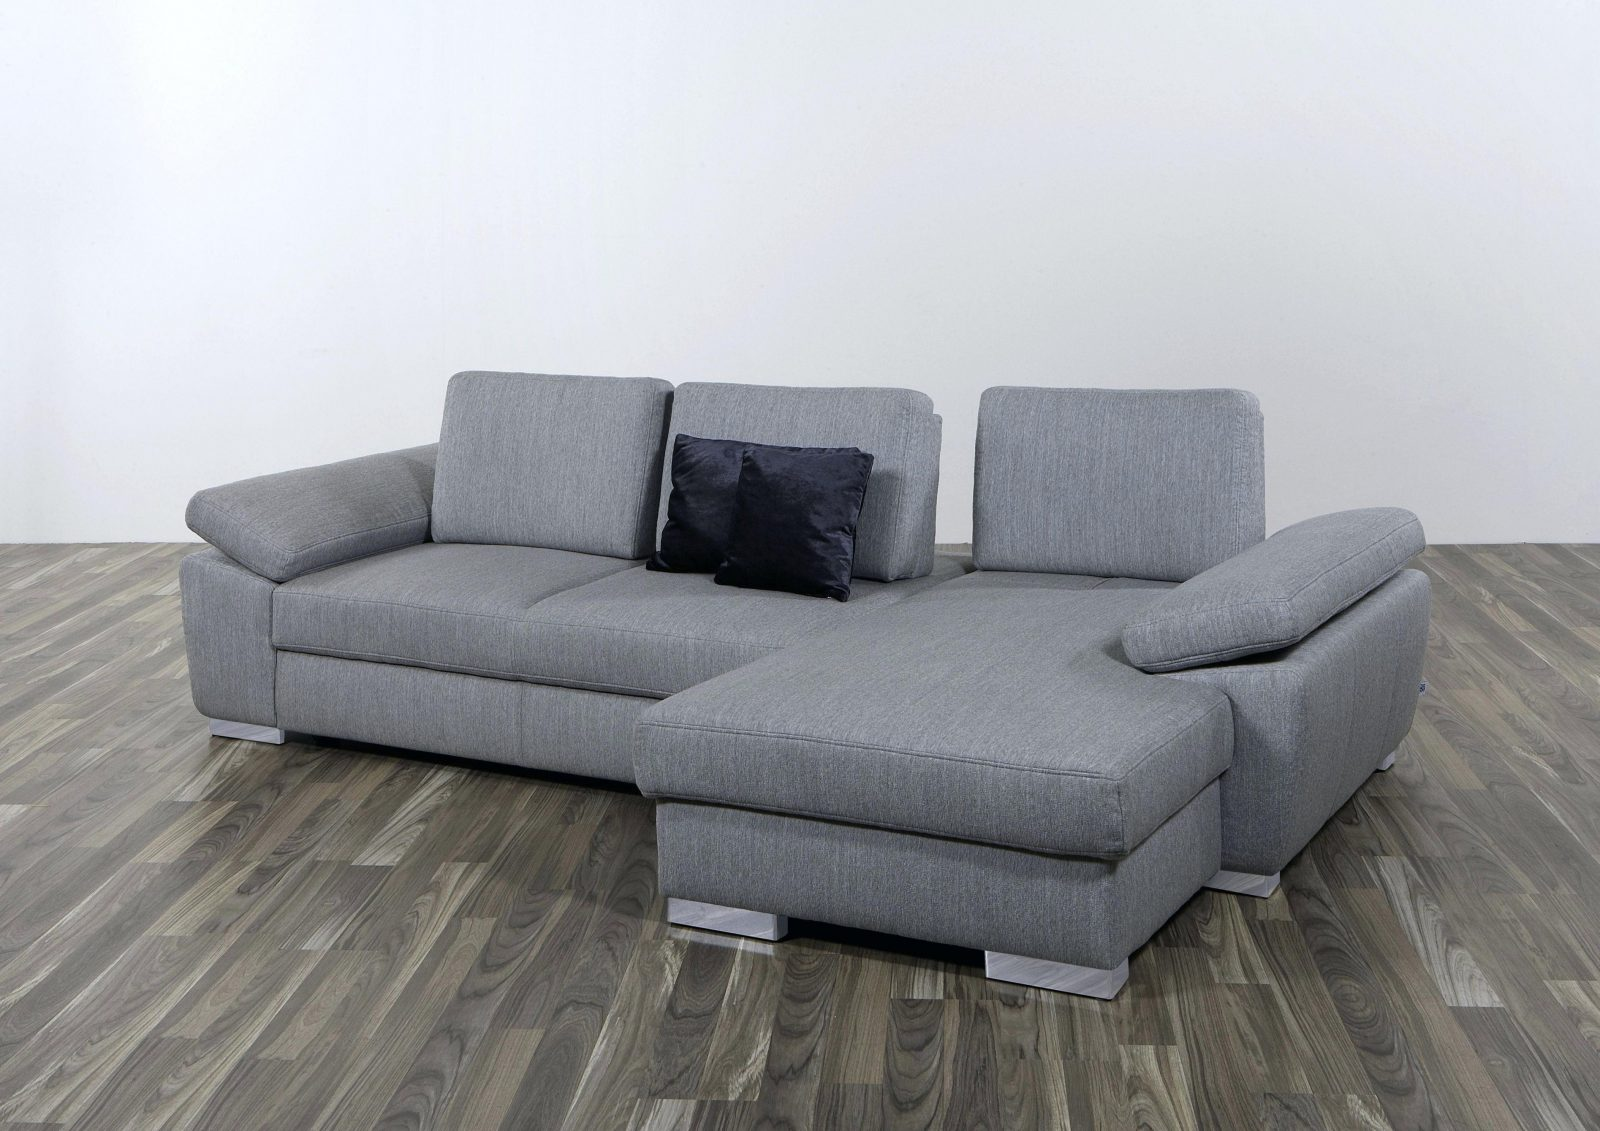 Poco Couch Grau Couch Grau Weiay Full Size Of Big Sofa Big Sofa von Big Sofa Xxl Poco Photo